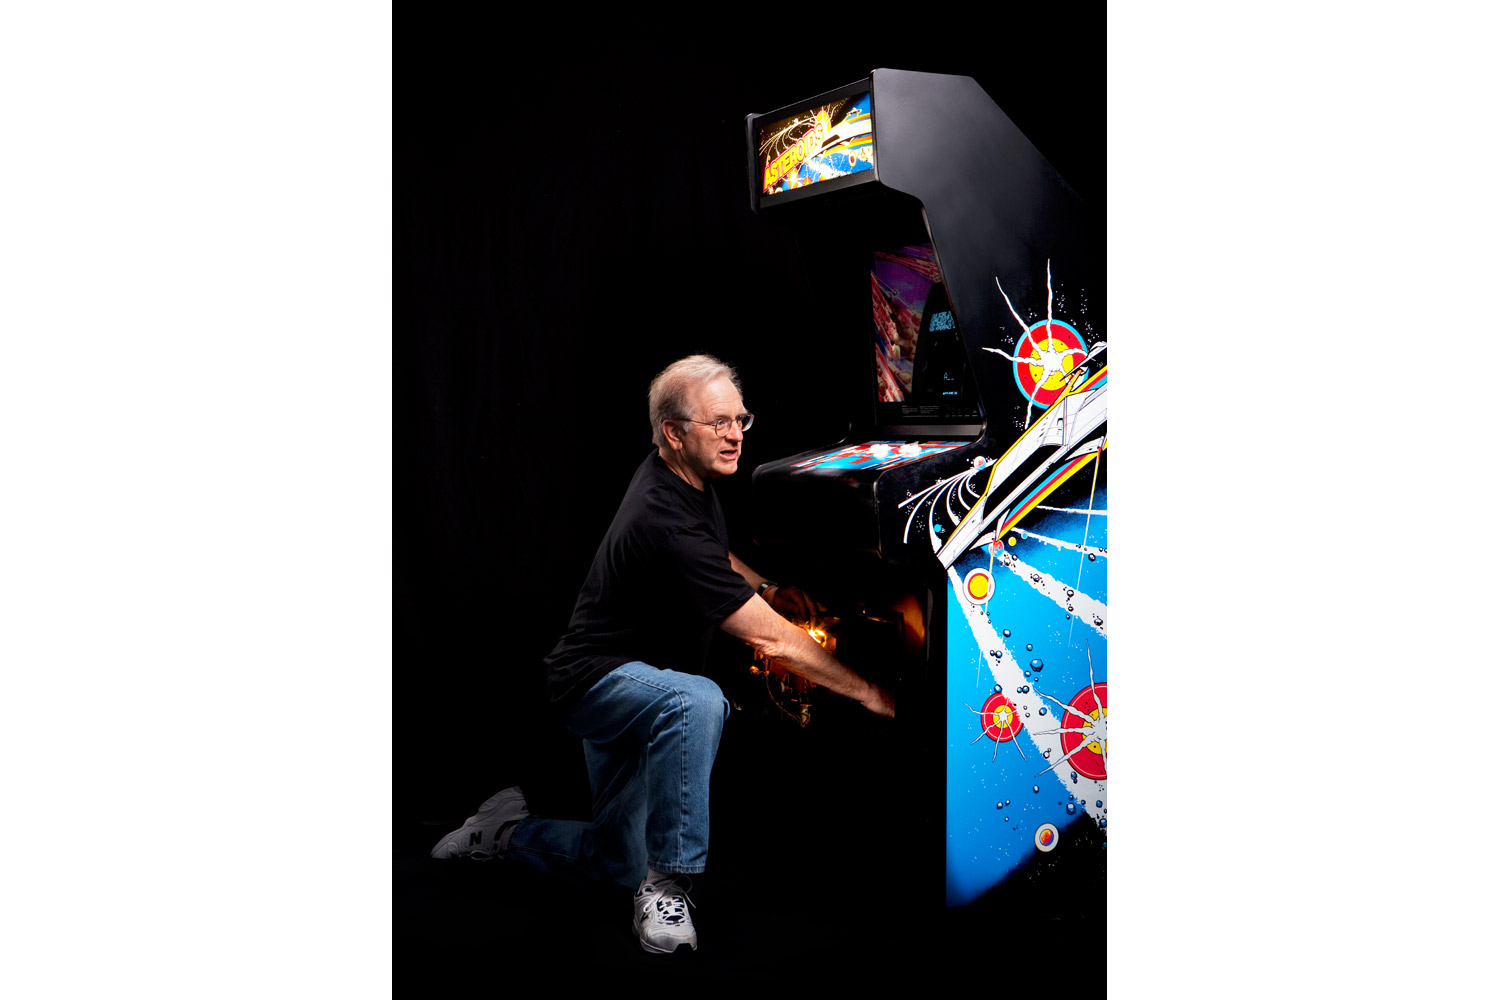 Ed Logg, Asteroids (1979)                               Atari's master of design — he made Centipede (1980) too — battle-tests the group's new games.